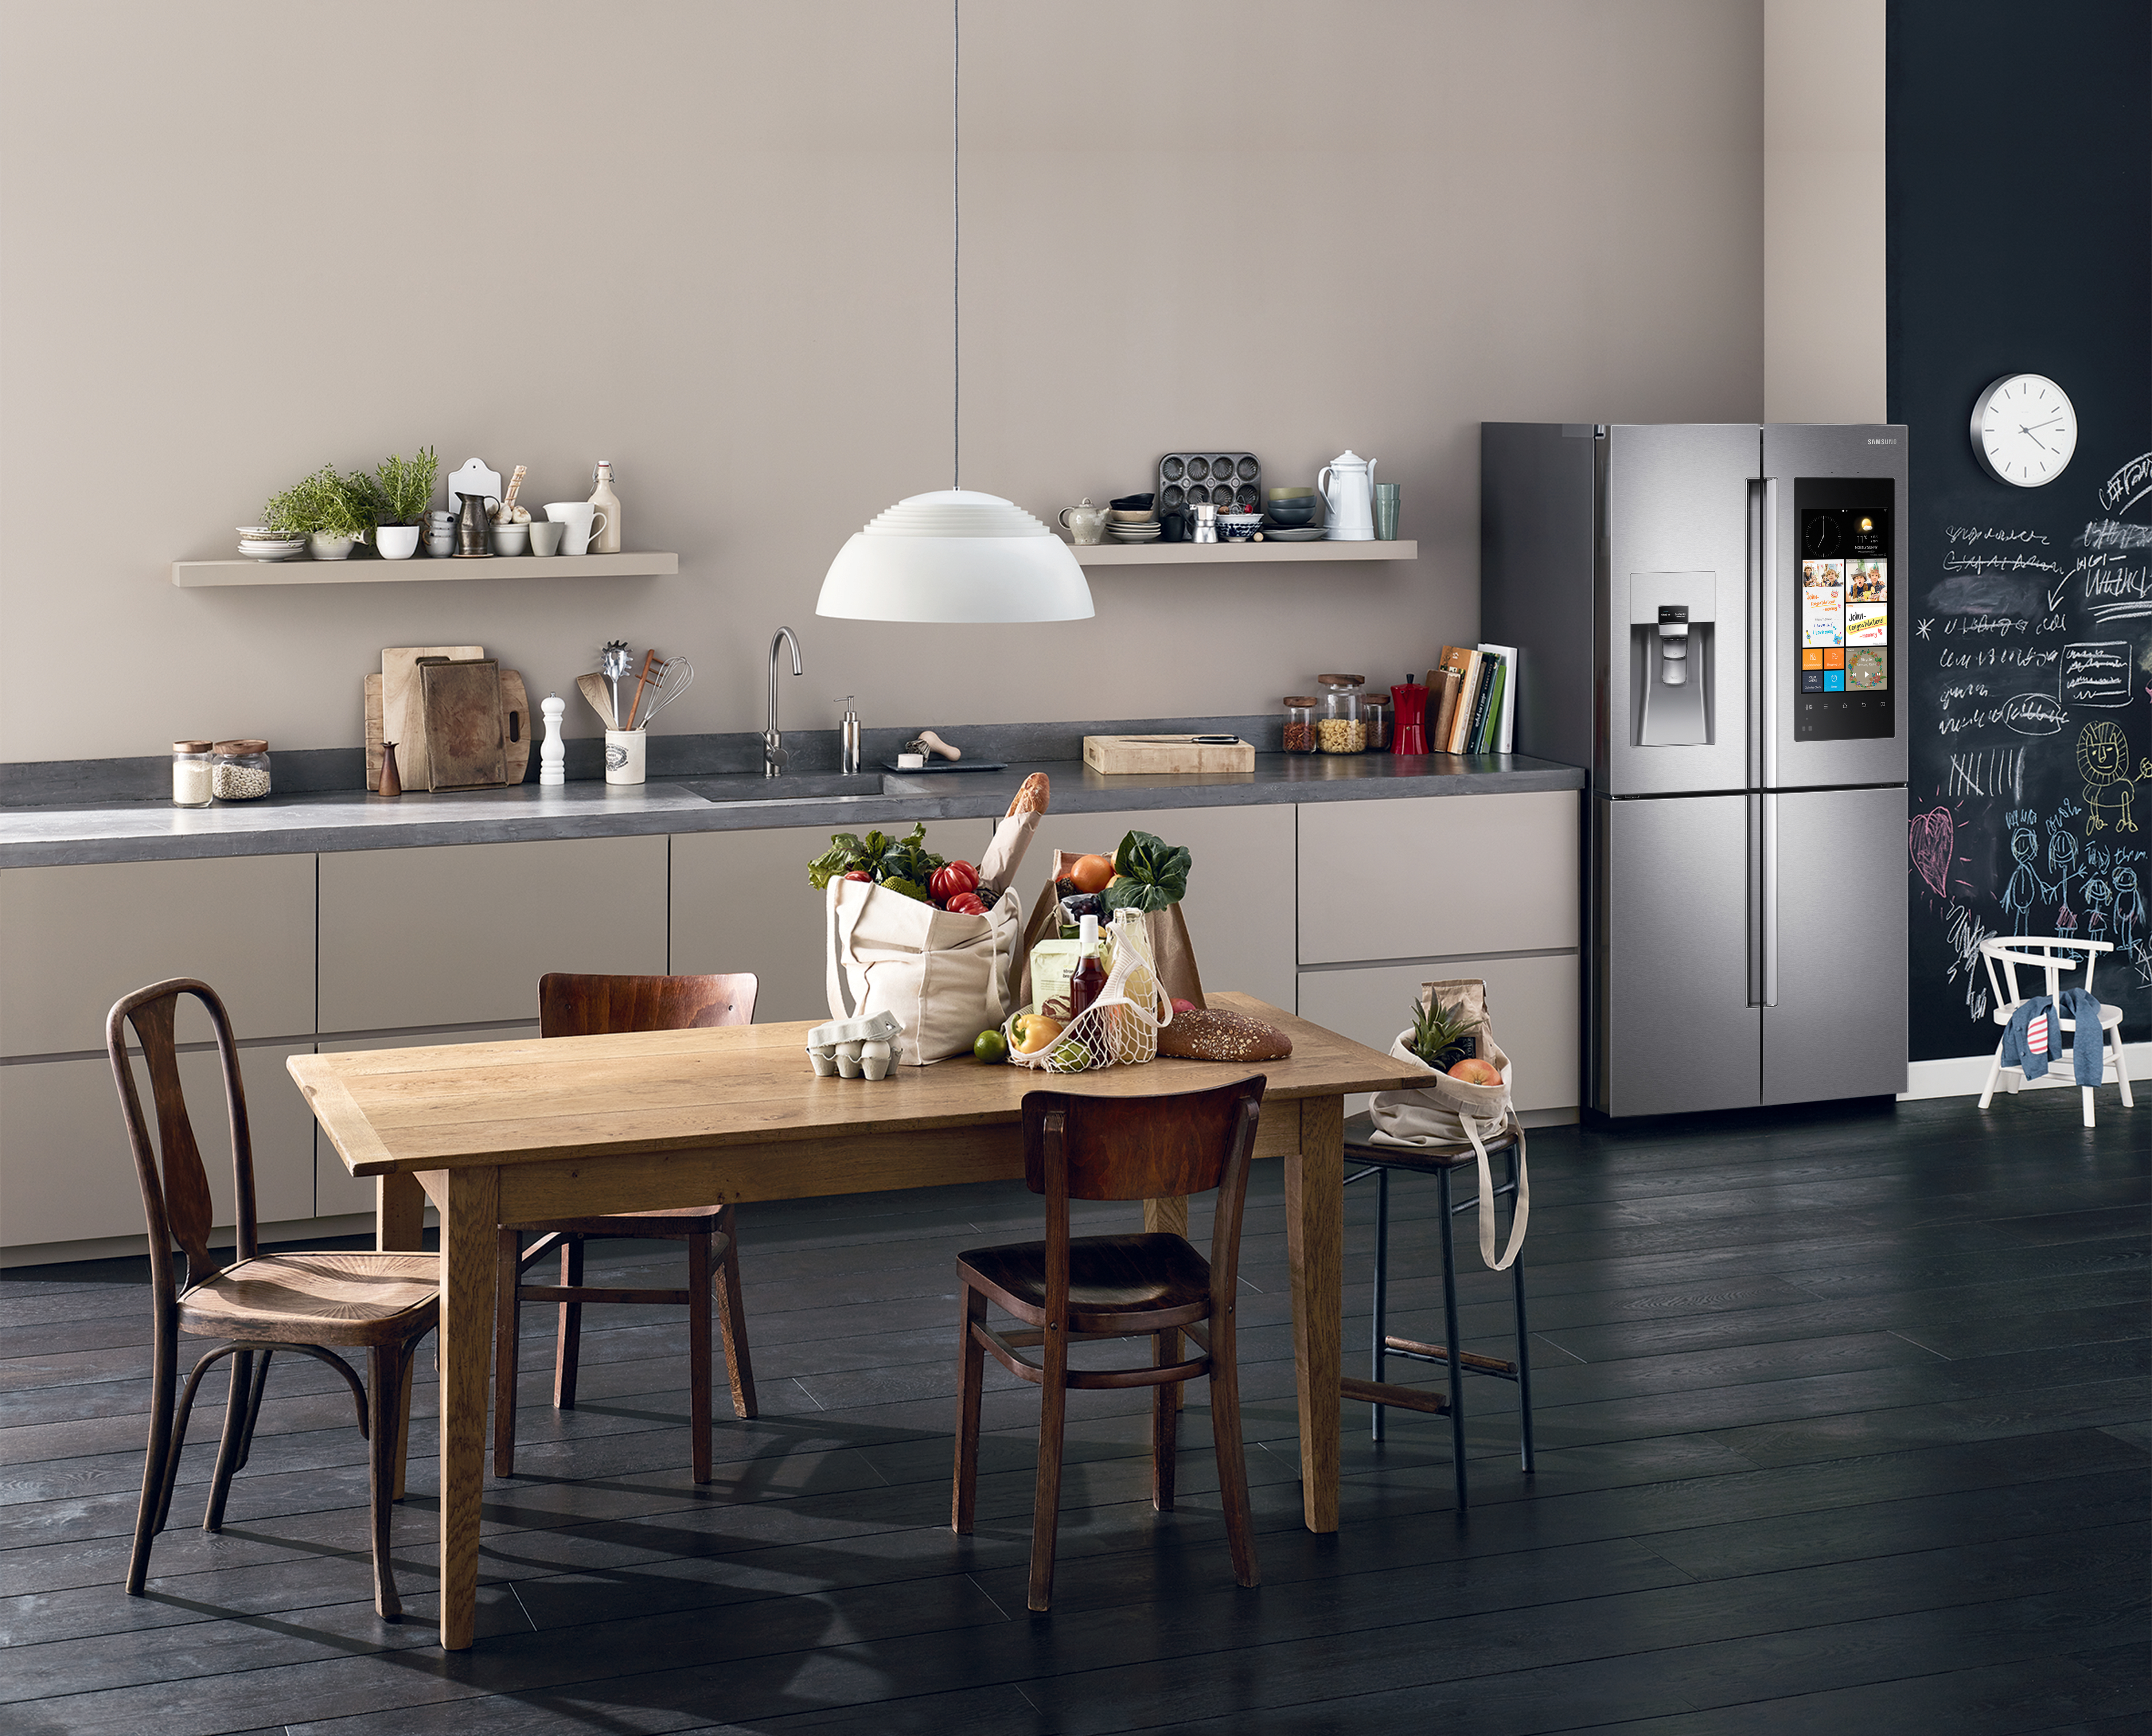 Good Expectations For The Smart Kitchen Appliances HA Household - Smart kitchen